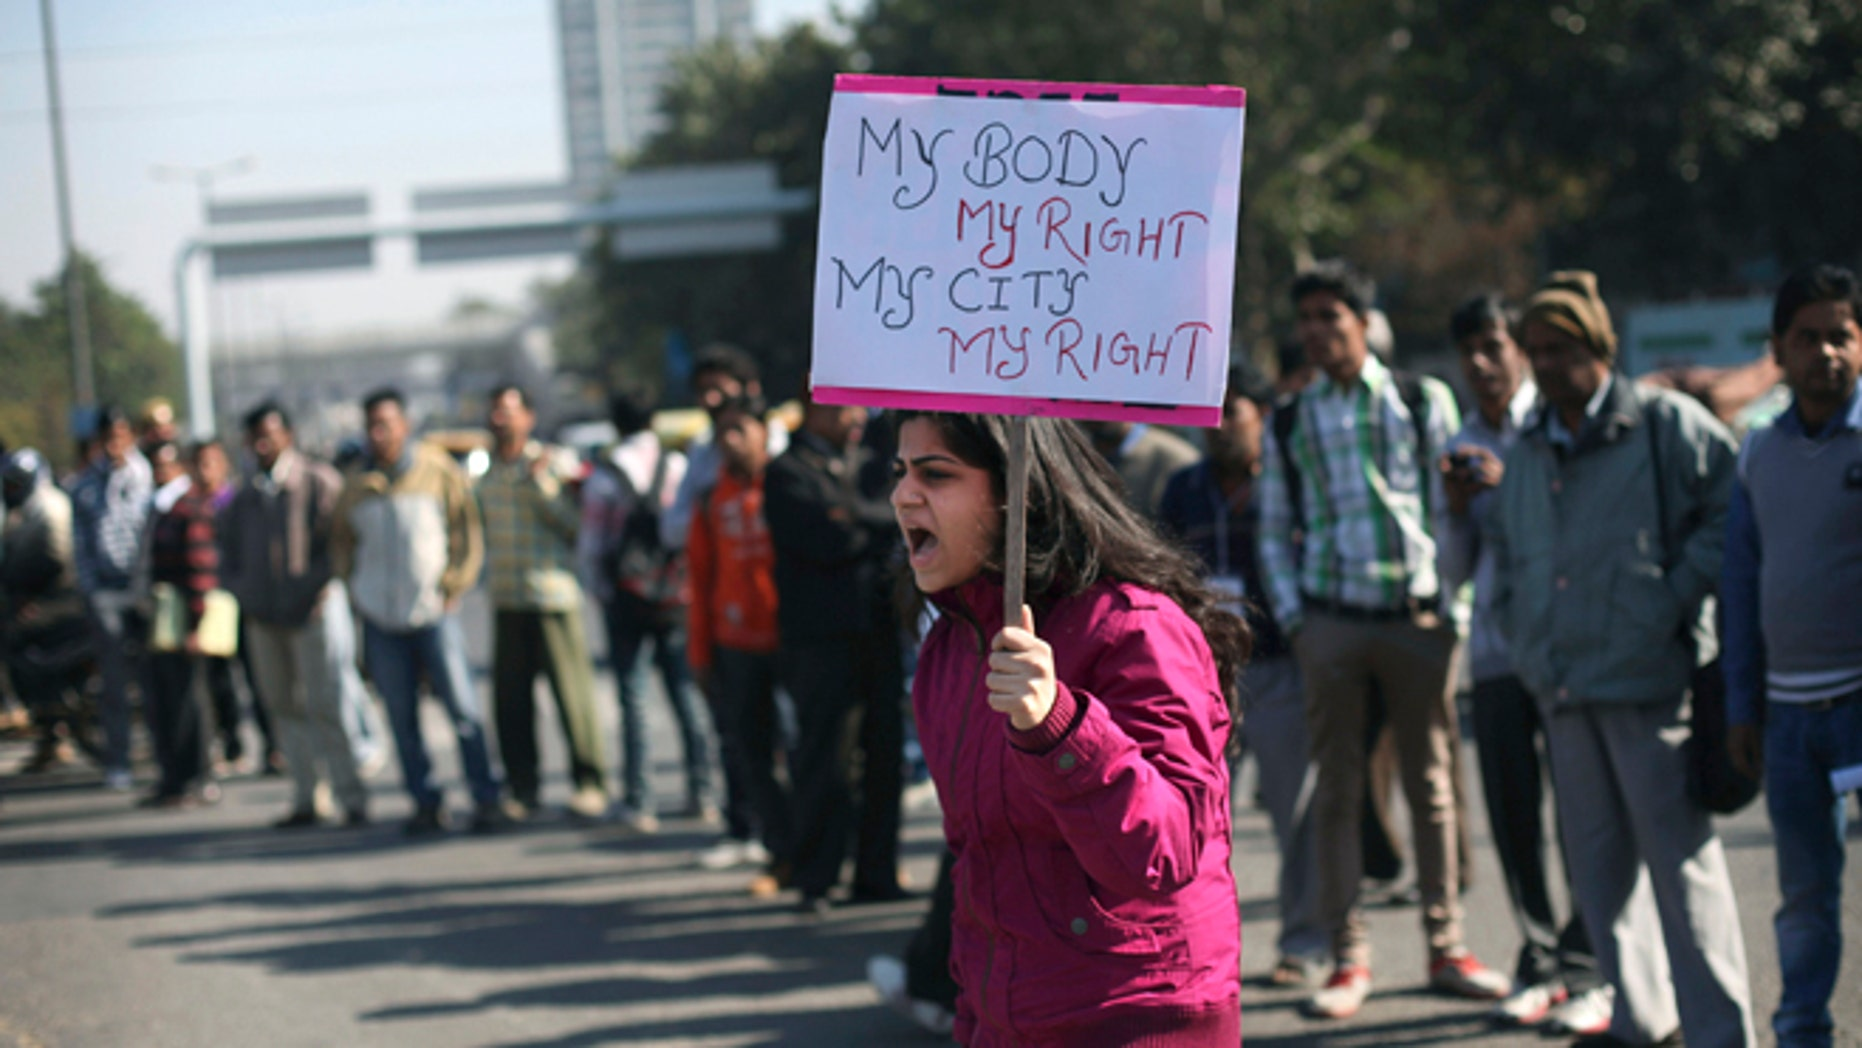 Dec. 19, 2012: An Indian woman shouts slogans outside the Delhi Police headquarters during a protest in New Delhi, India.